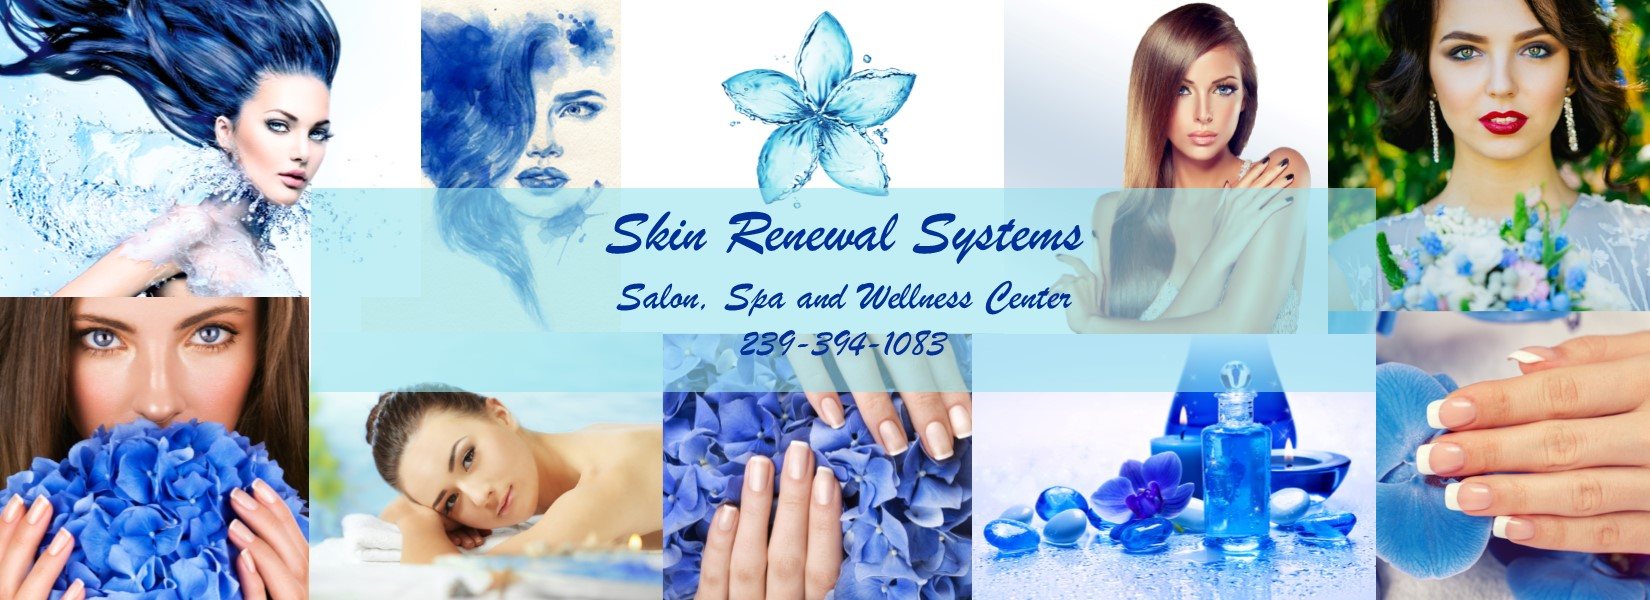 First Bemer Mat on Marco Island available at Skin Renewal Systems